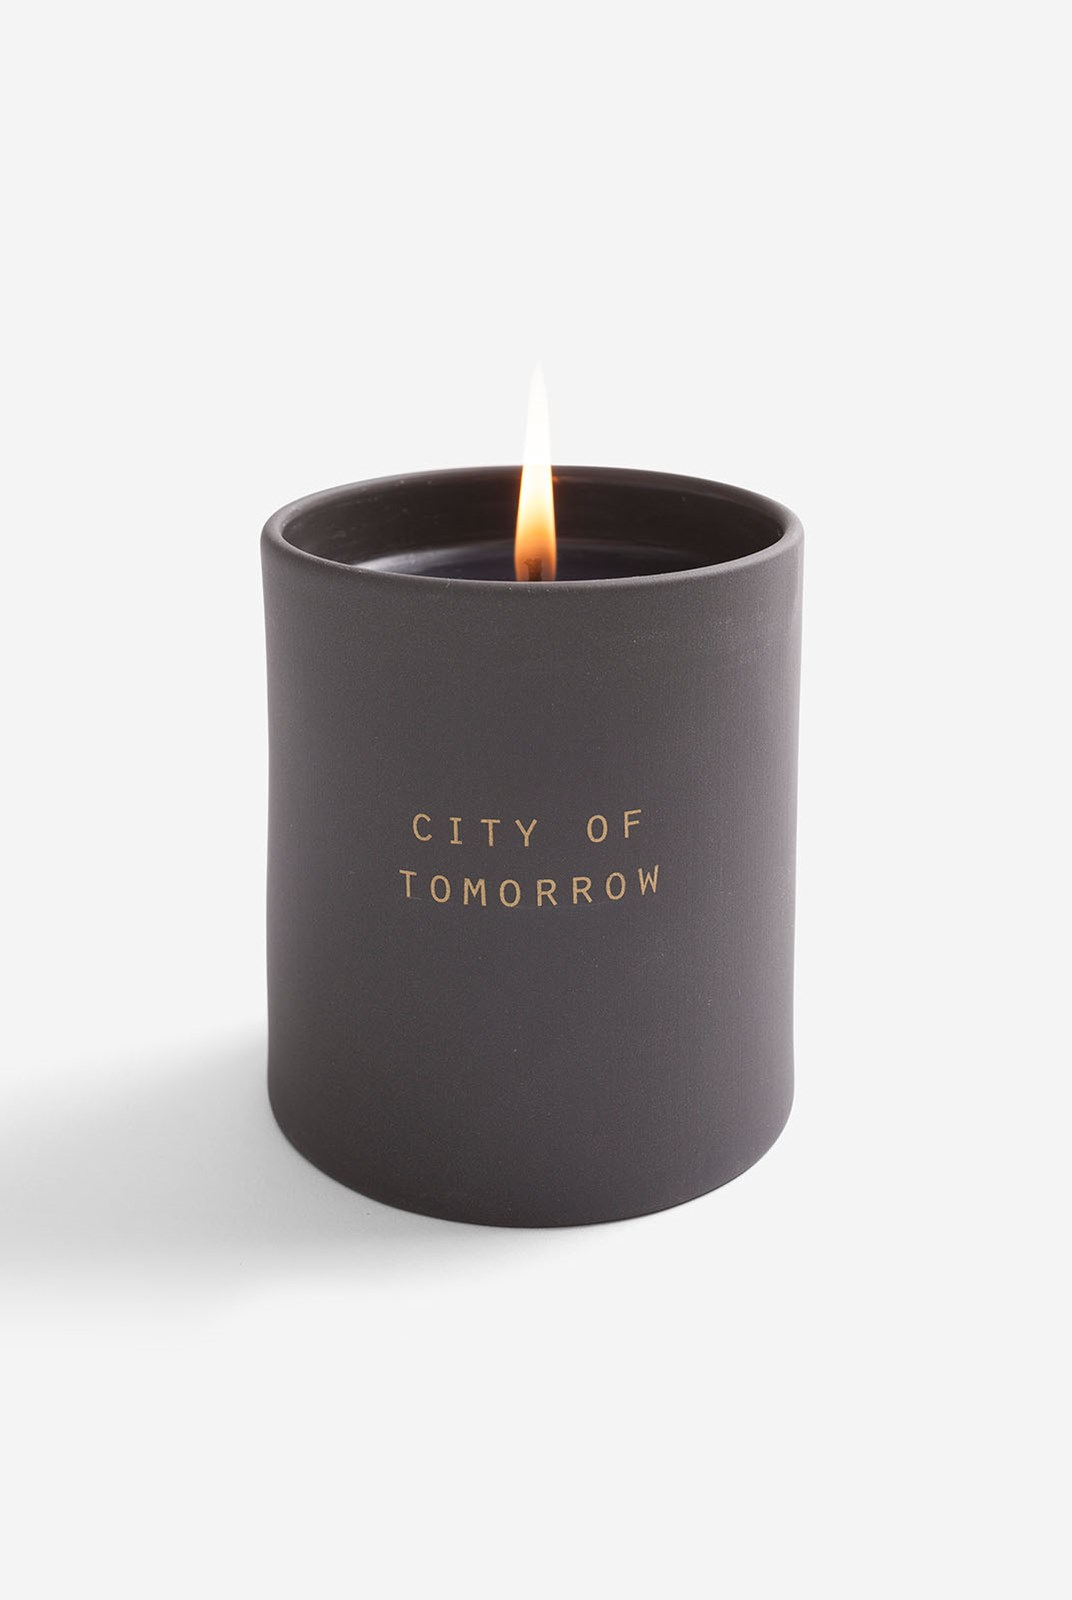 The School Of Life - Utopia Candle - The City of Tomorrow